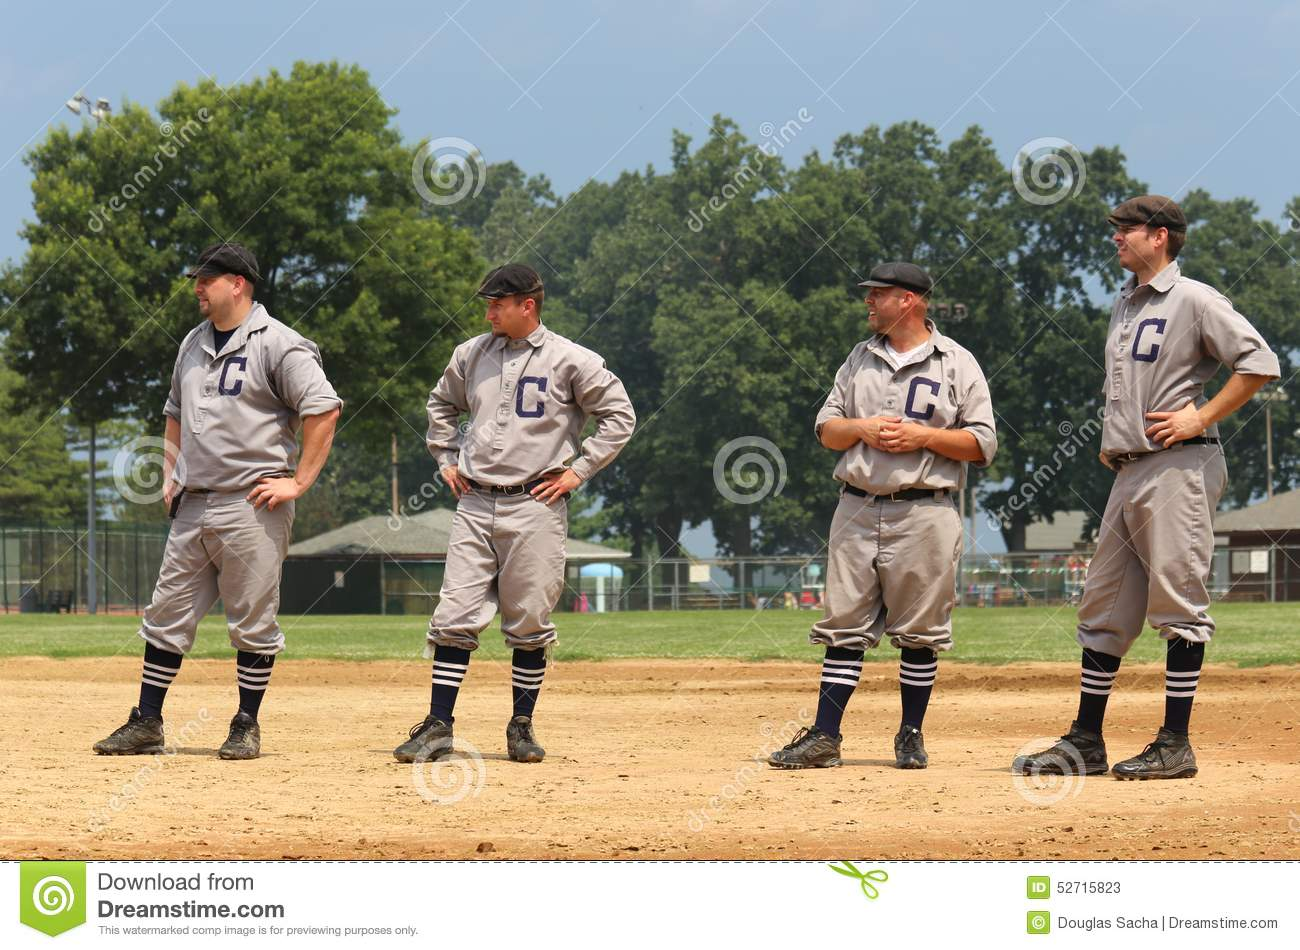 Vintage Baseball team lines up for pregame introductions at a vintage  baseball game, classic ballpark in summer amateur league, Midwest, United  States.